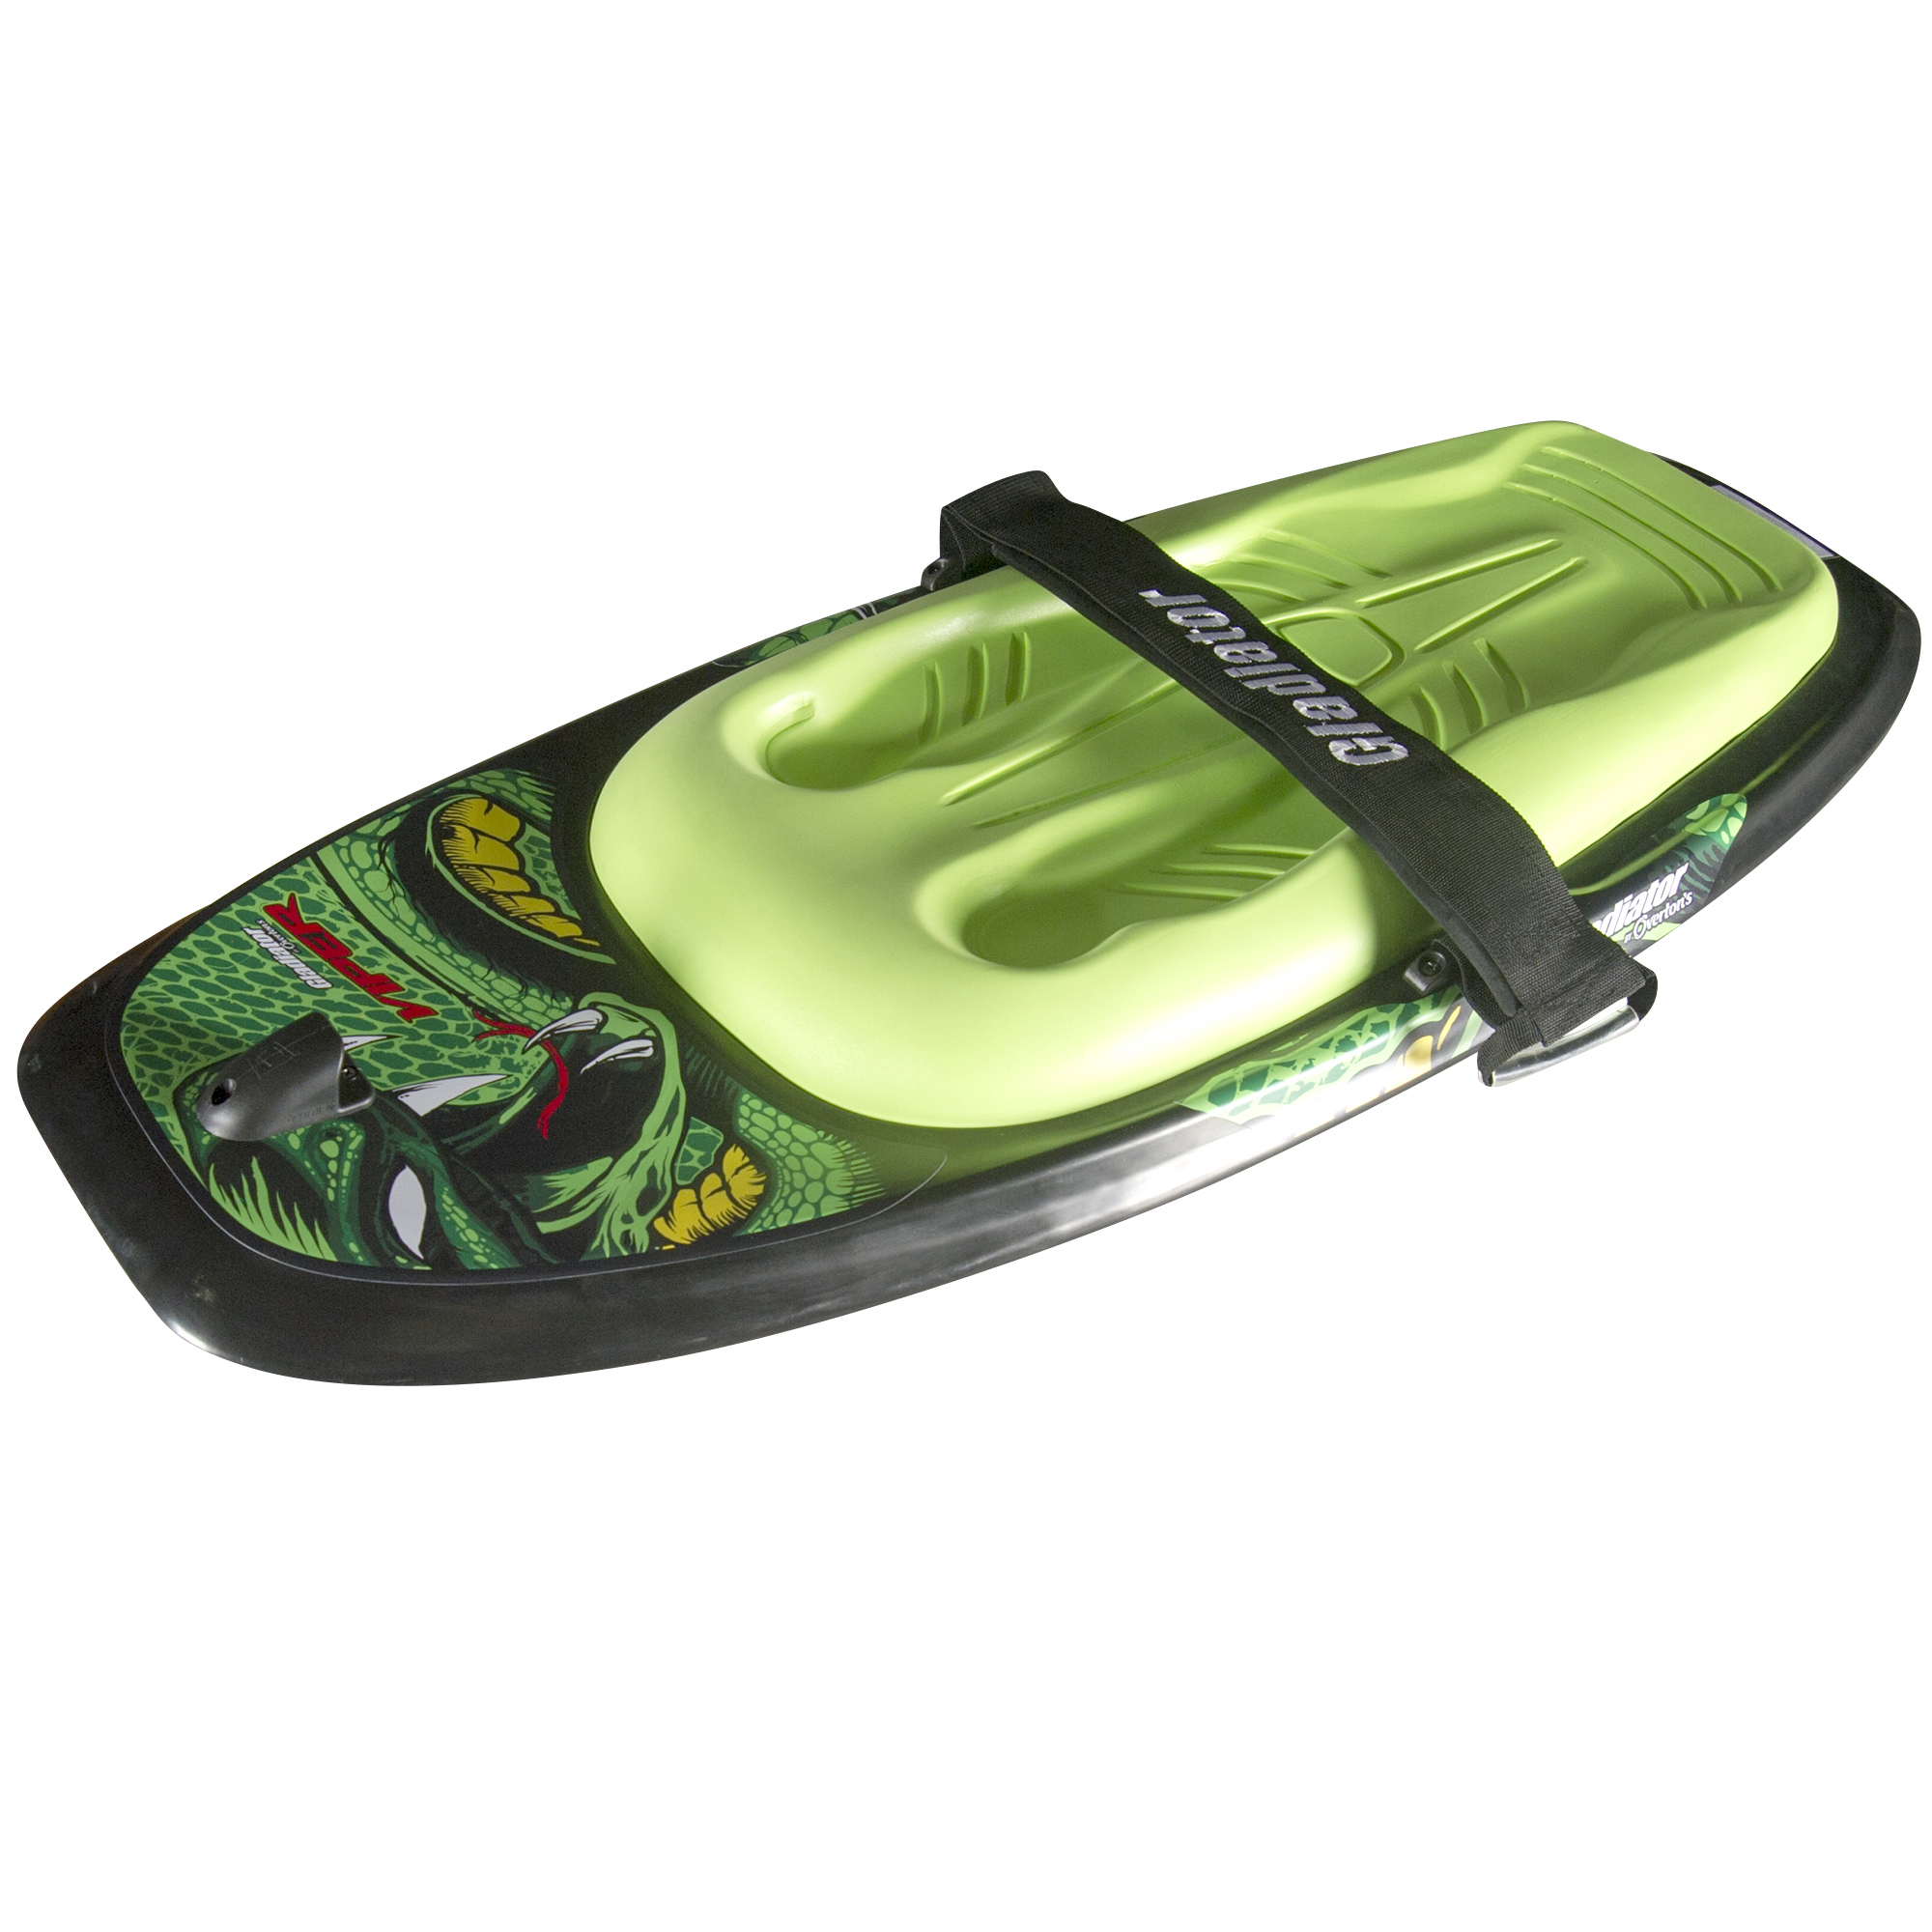 Gladiator Viper Kneeboard Package